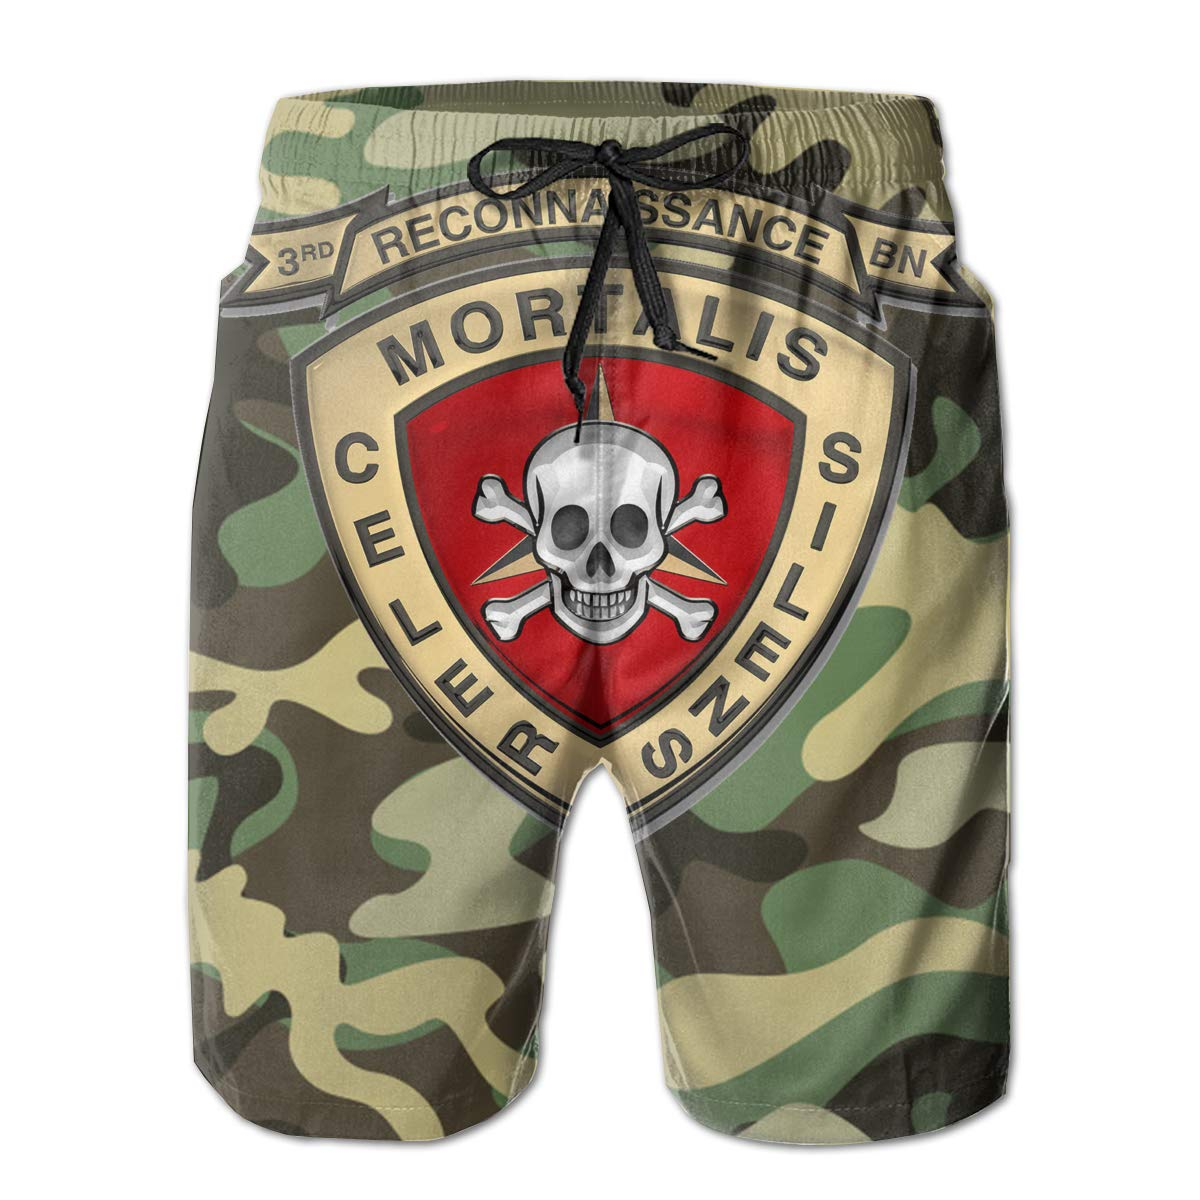 Hdecrr FFRE 3rd Reconnaissance Battalion Mens Summer Casual Board Shorts Quick Dry Board Shorts with Pockets